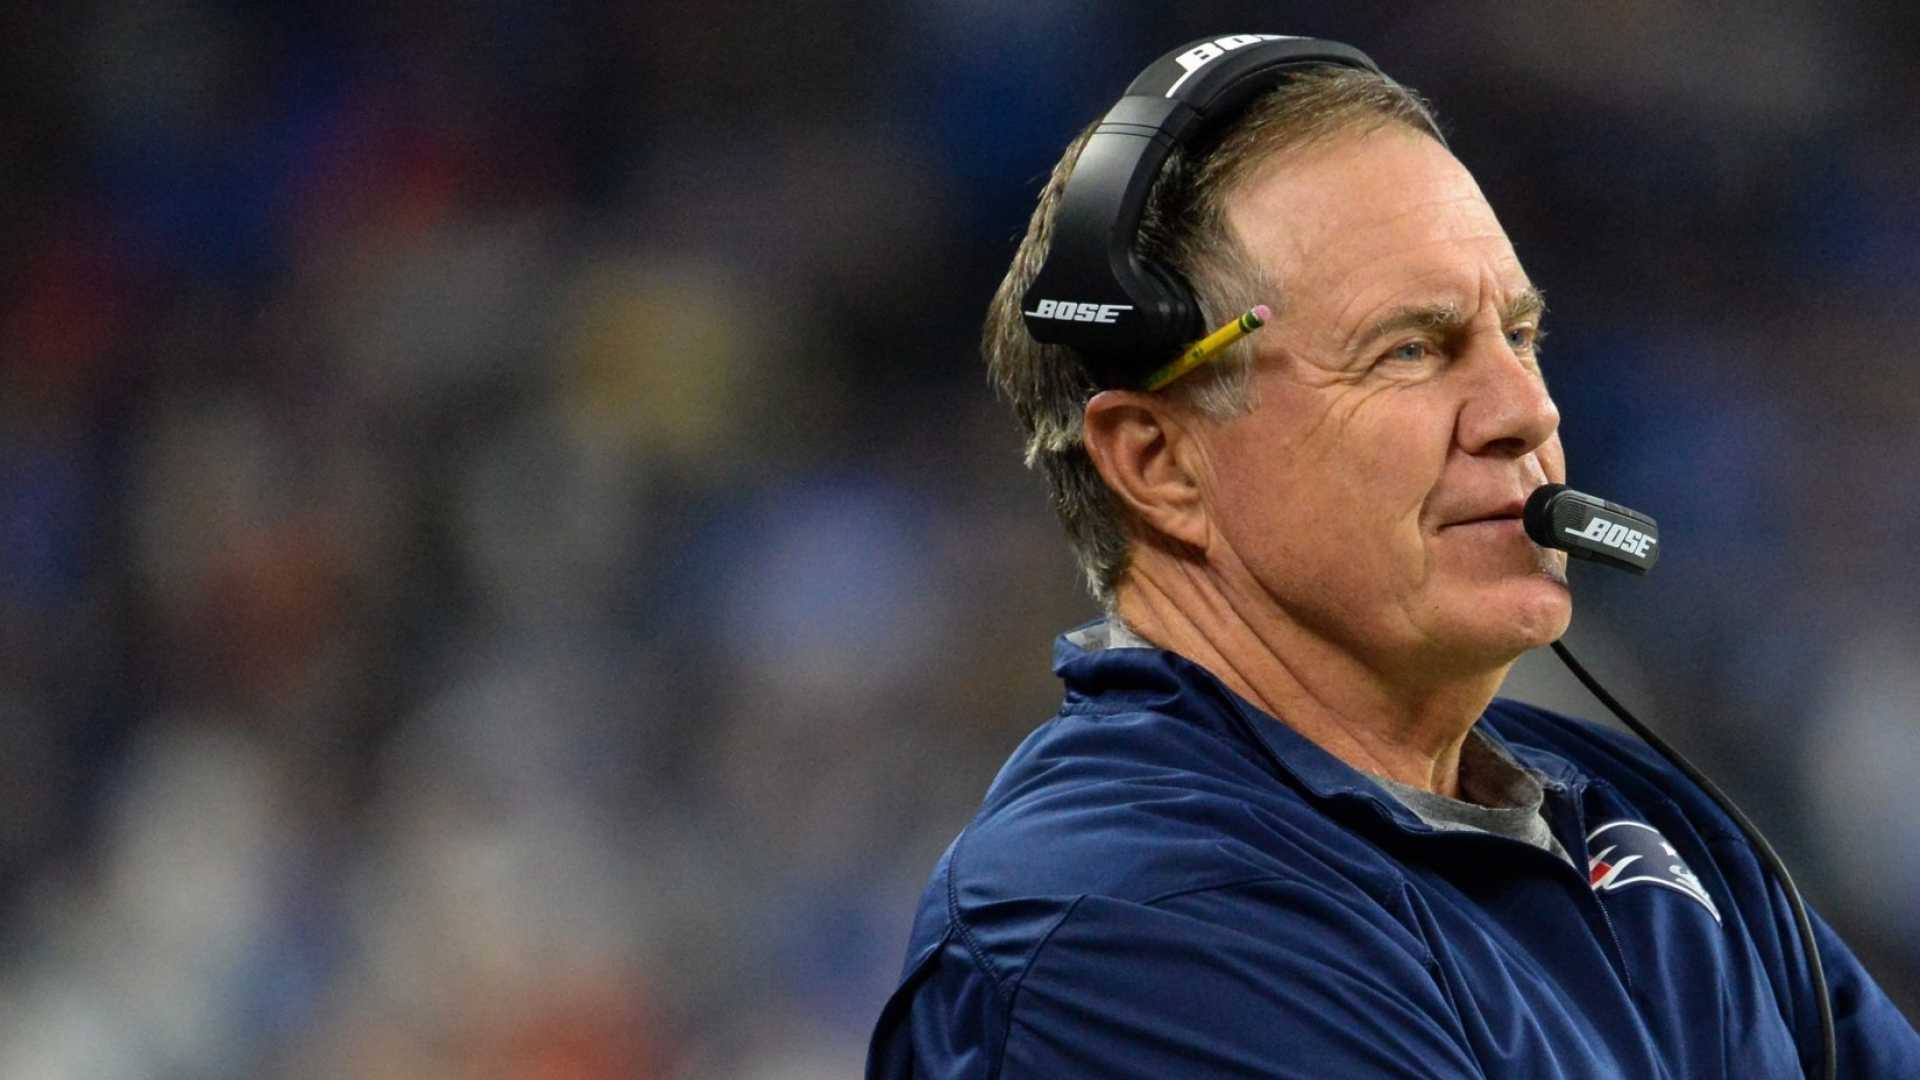 Bill Belichick and the Patriots Have Won 5 Super Bowls With a Formula You Can Apply to Your Business